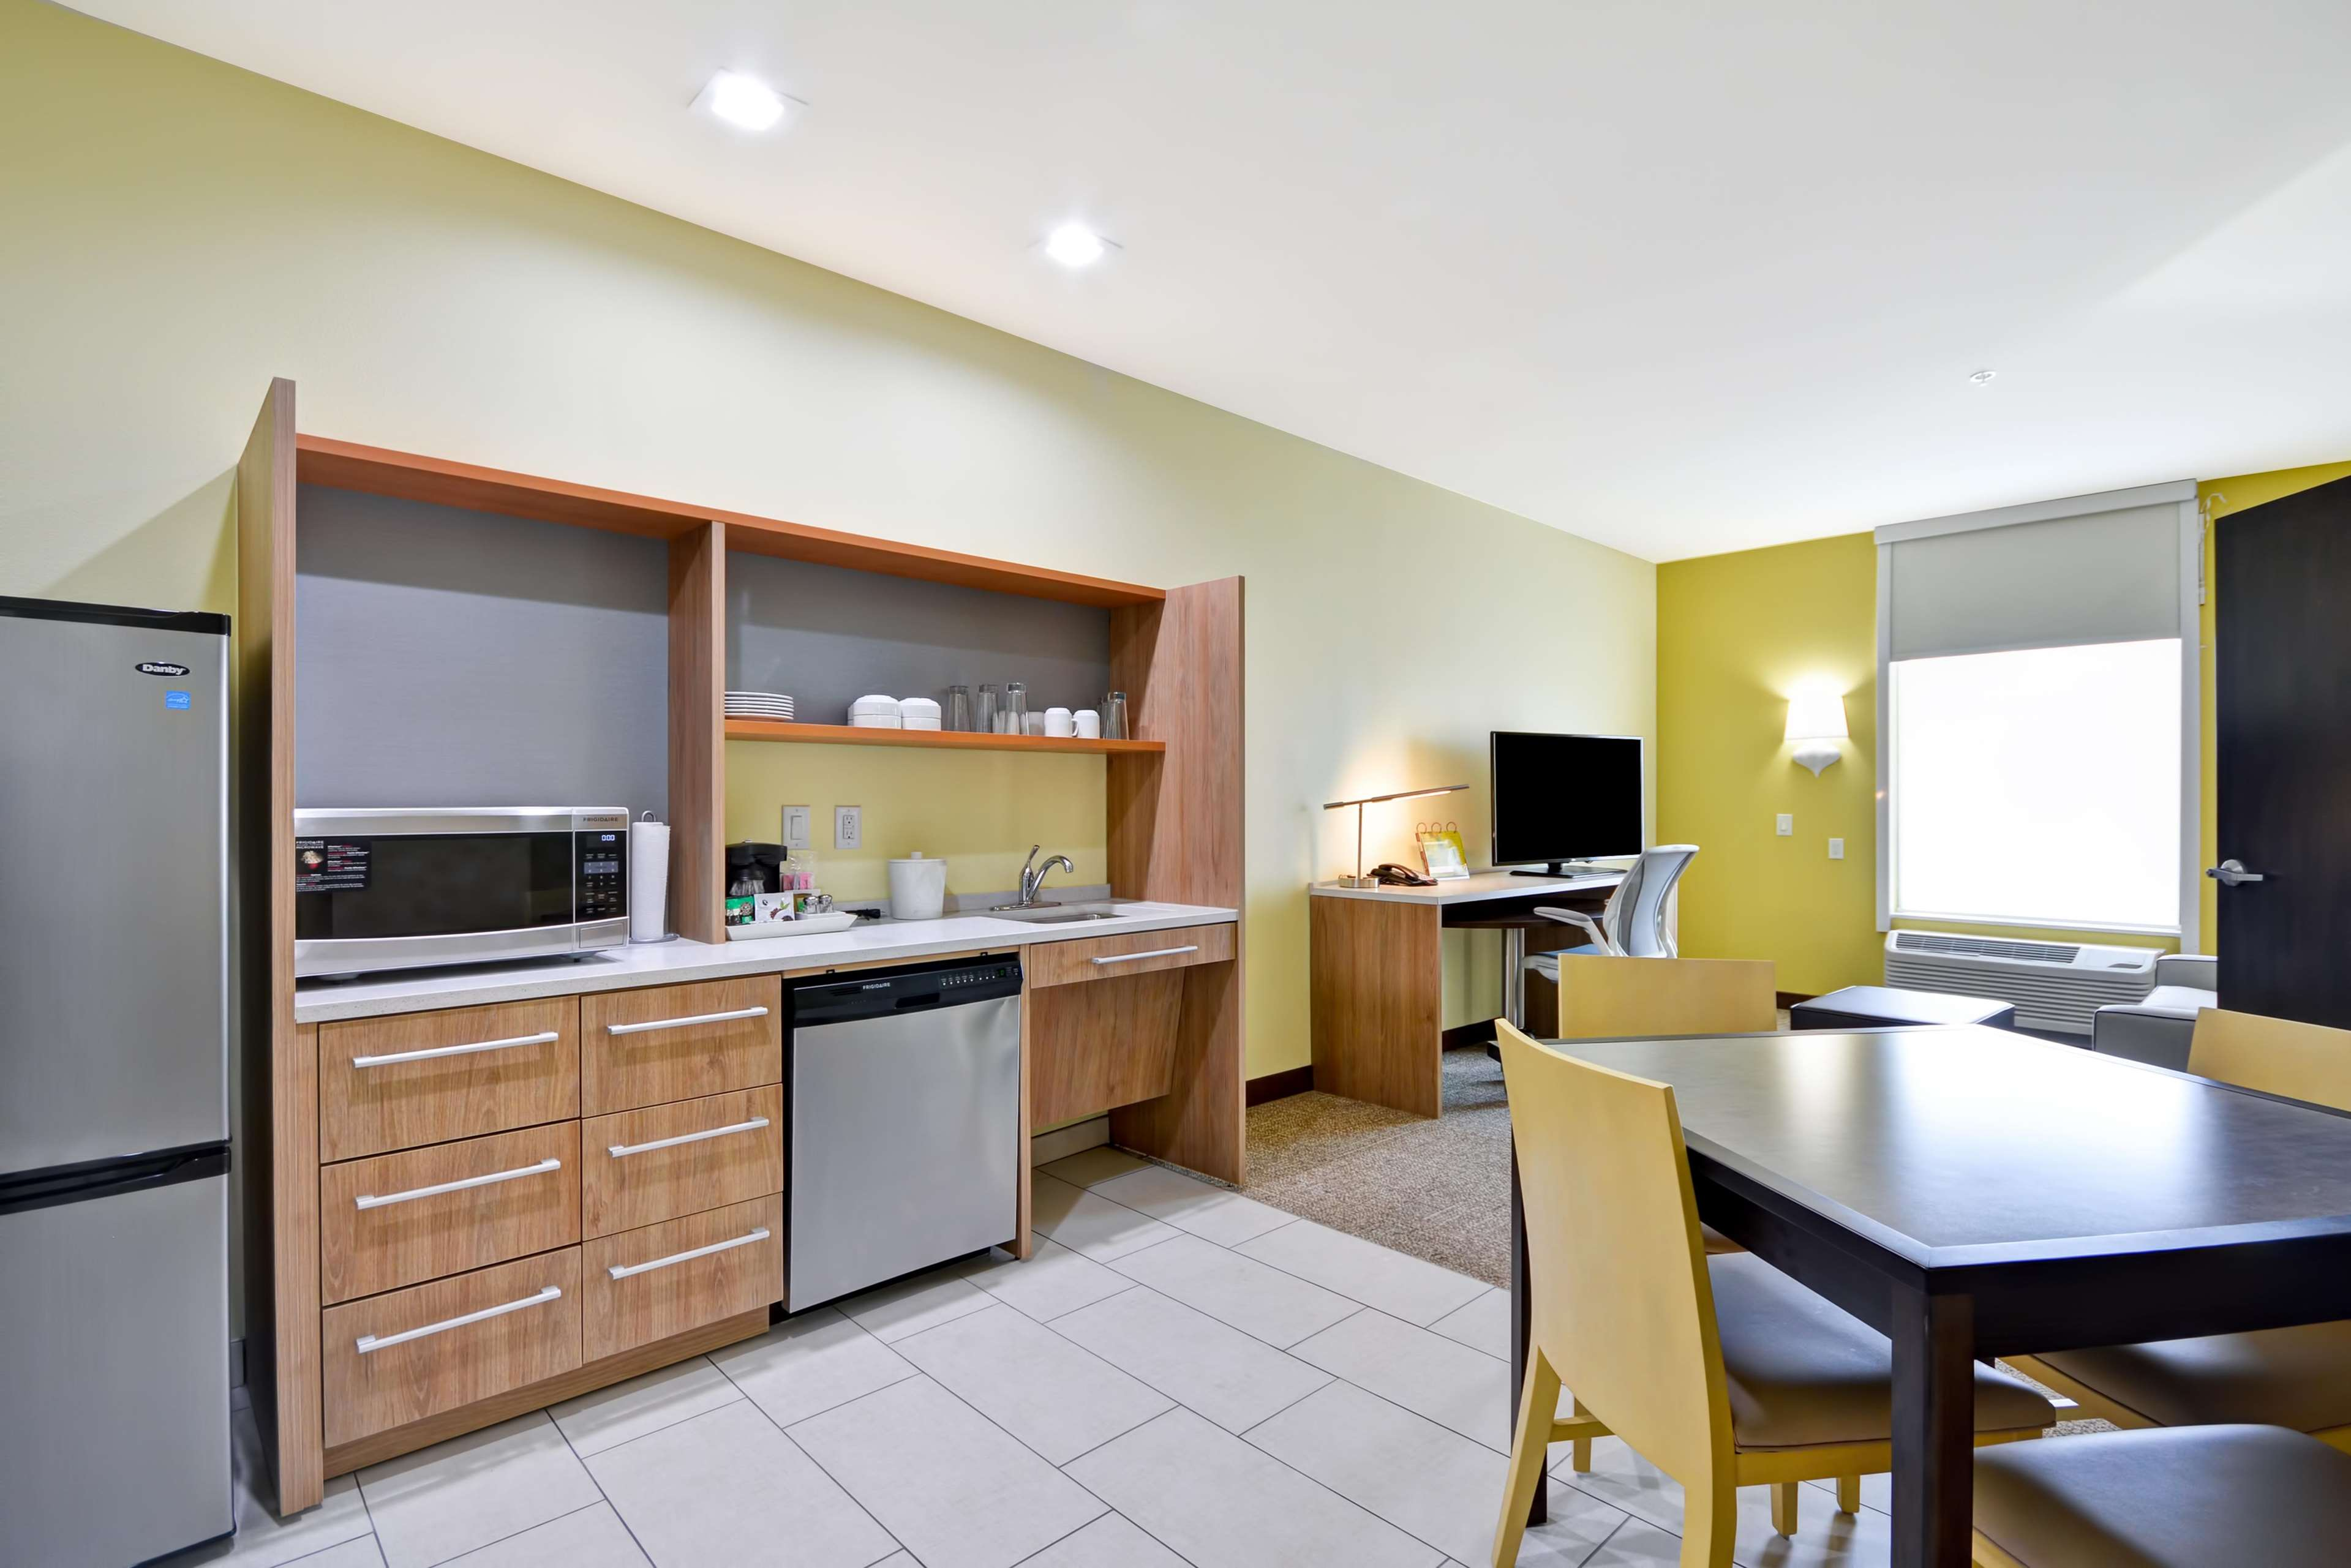 Home2 Suites by Hilton Fort Worth Southwest Cityview image 9